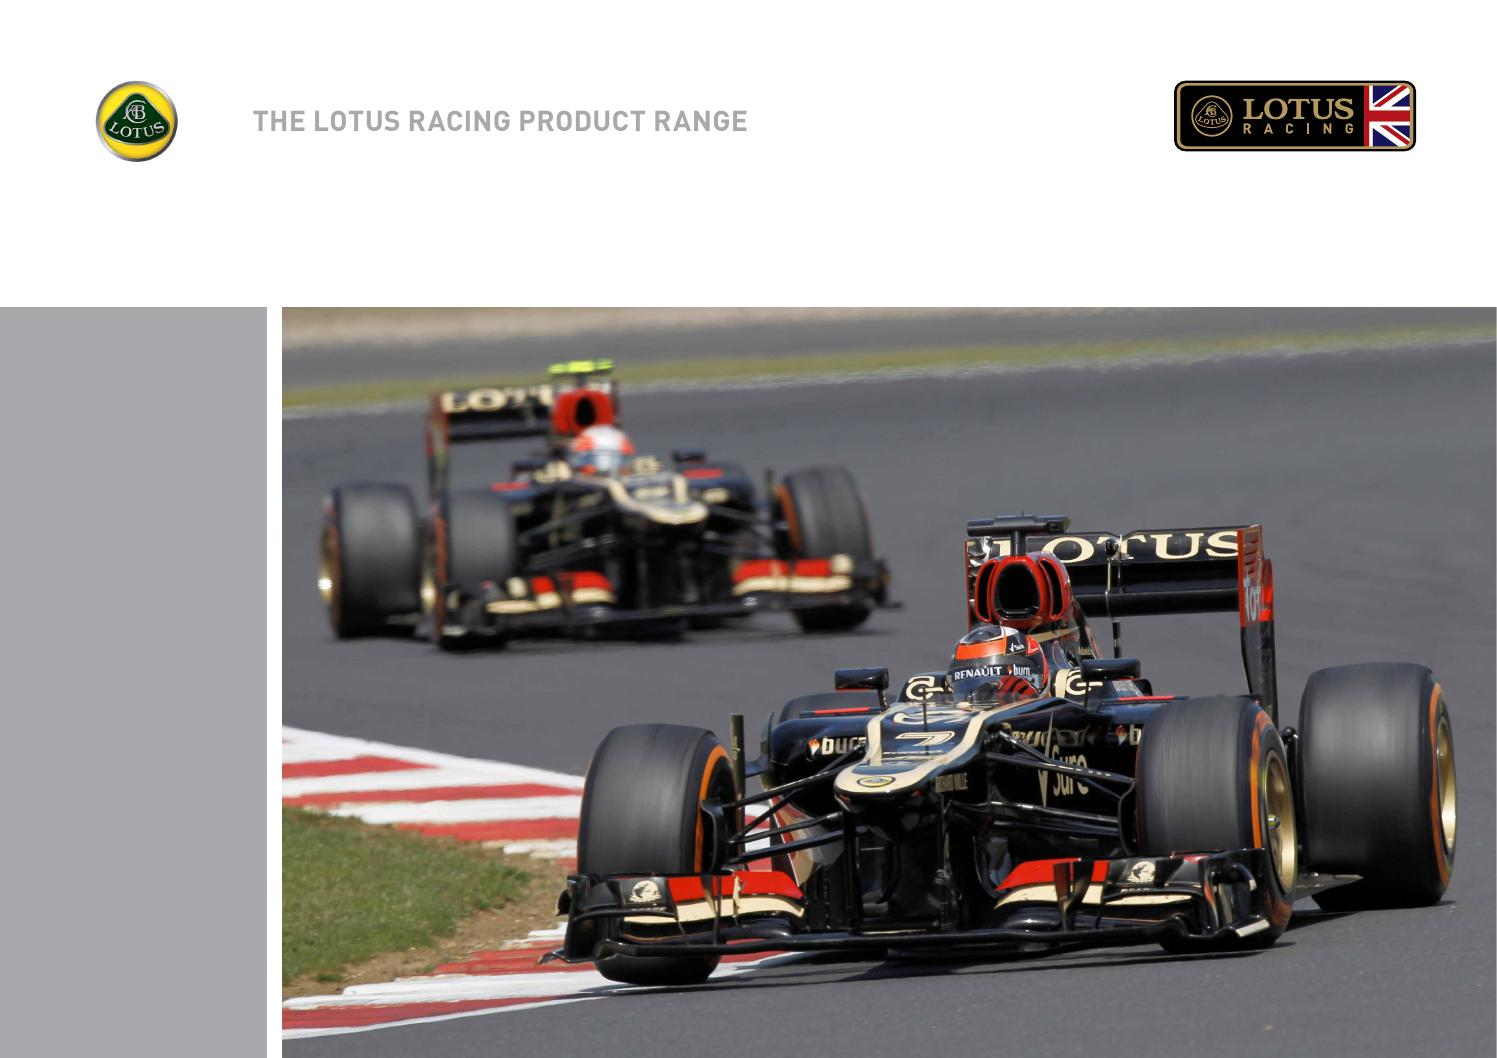 Lotus Racing Car Brochure by Lotus Cars - issuu